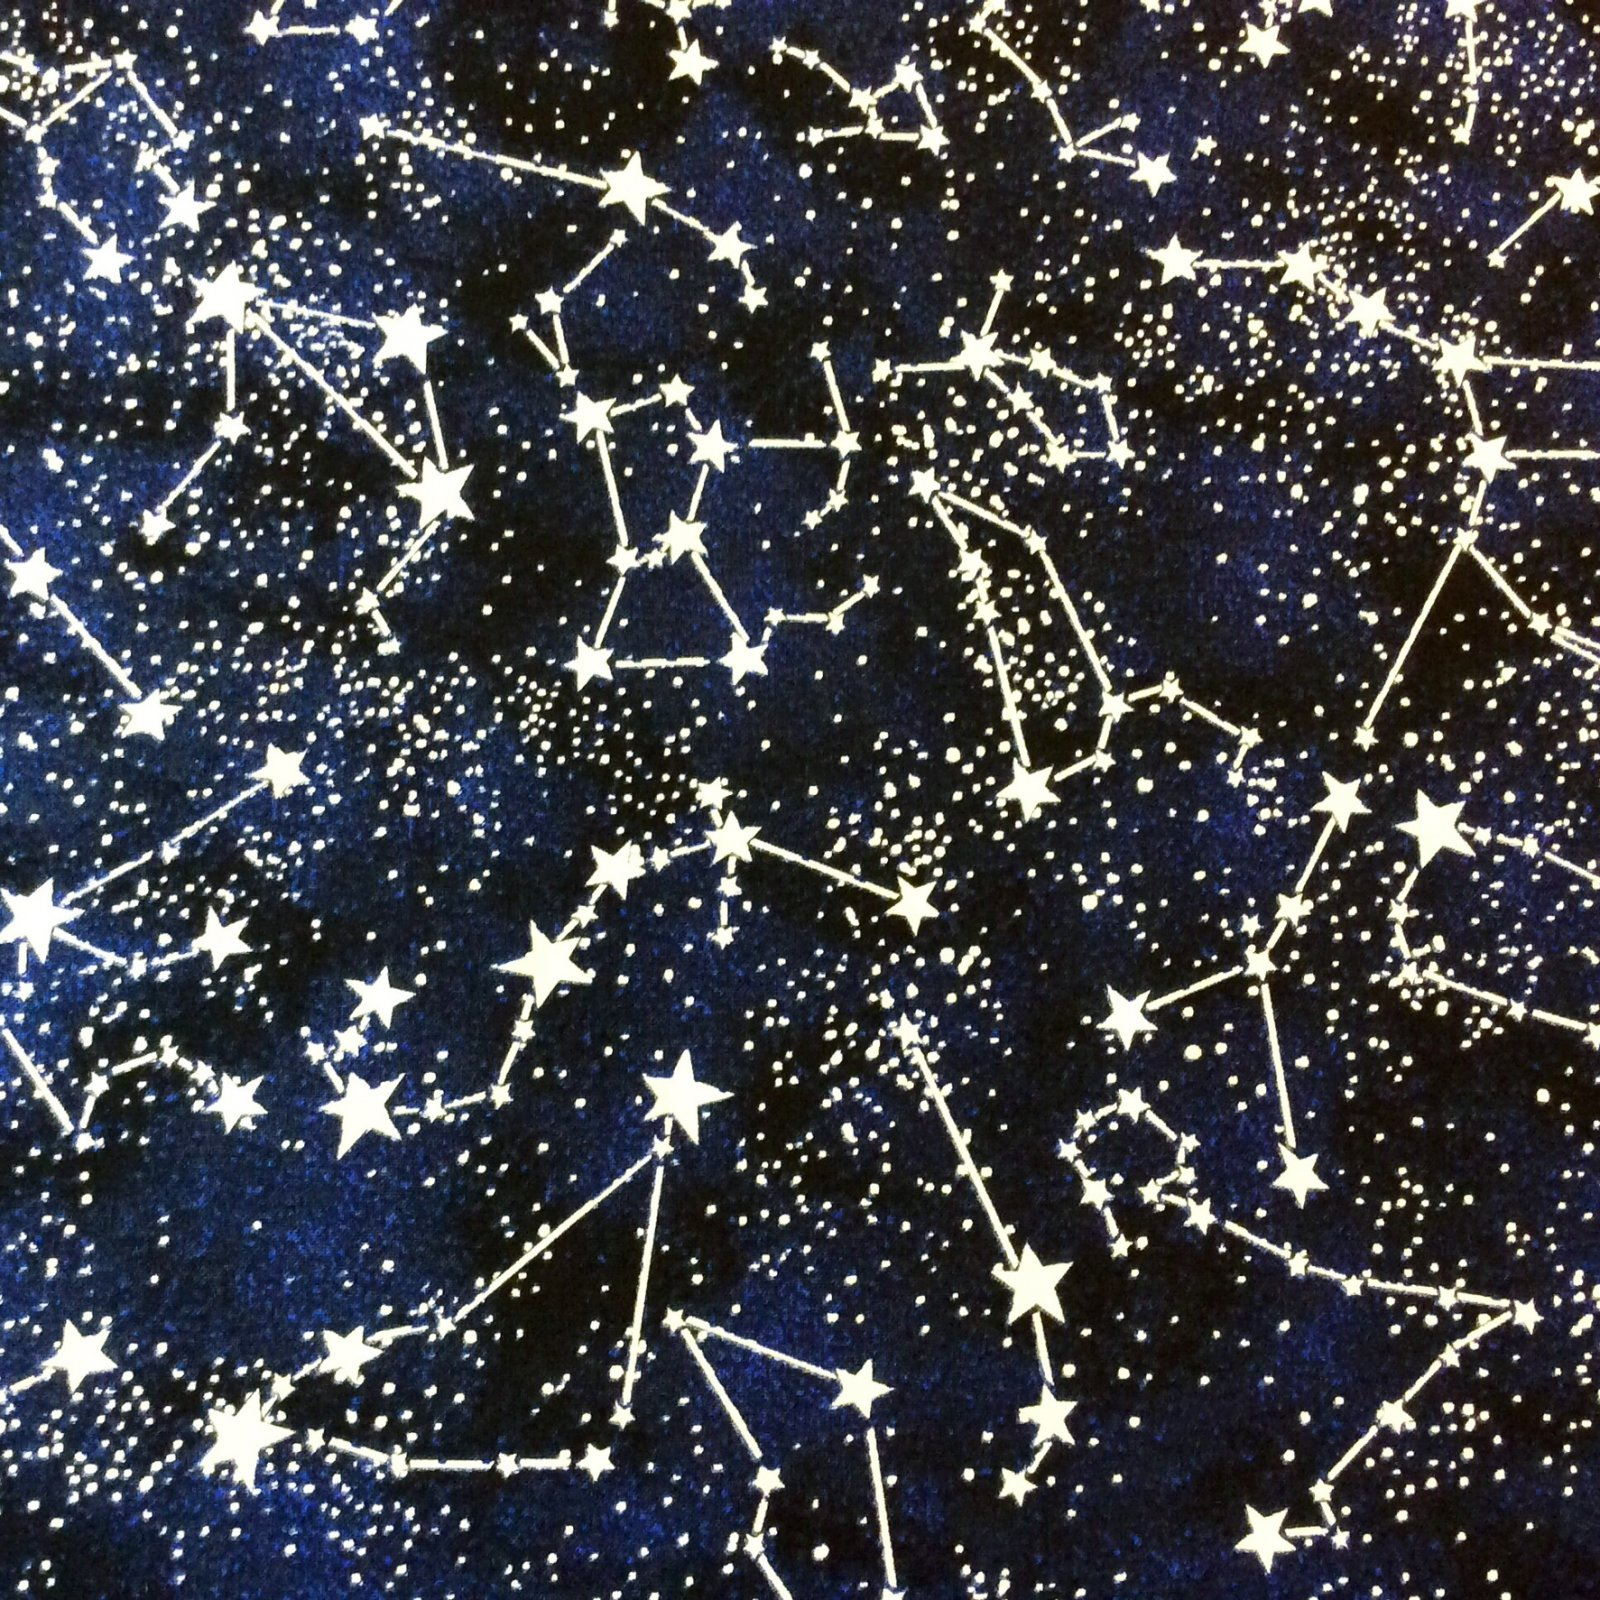 Galaxy stars zodiac constellations glow in the dark space for Space themed fabric